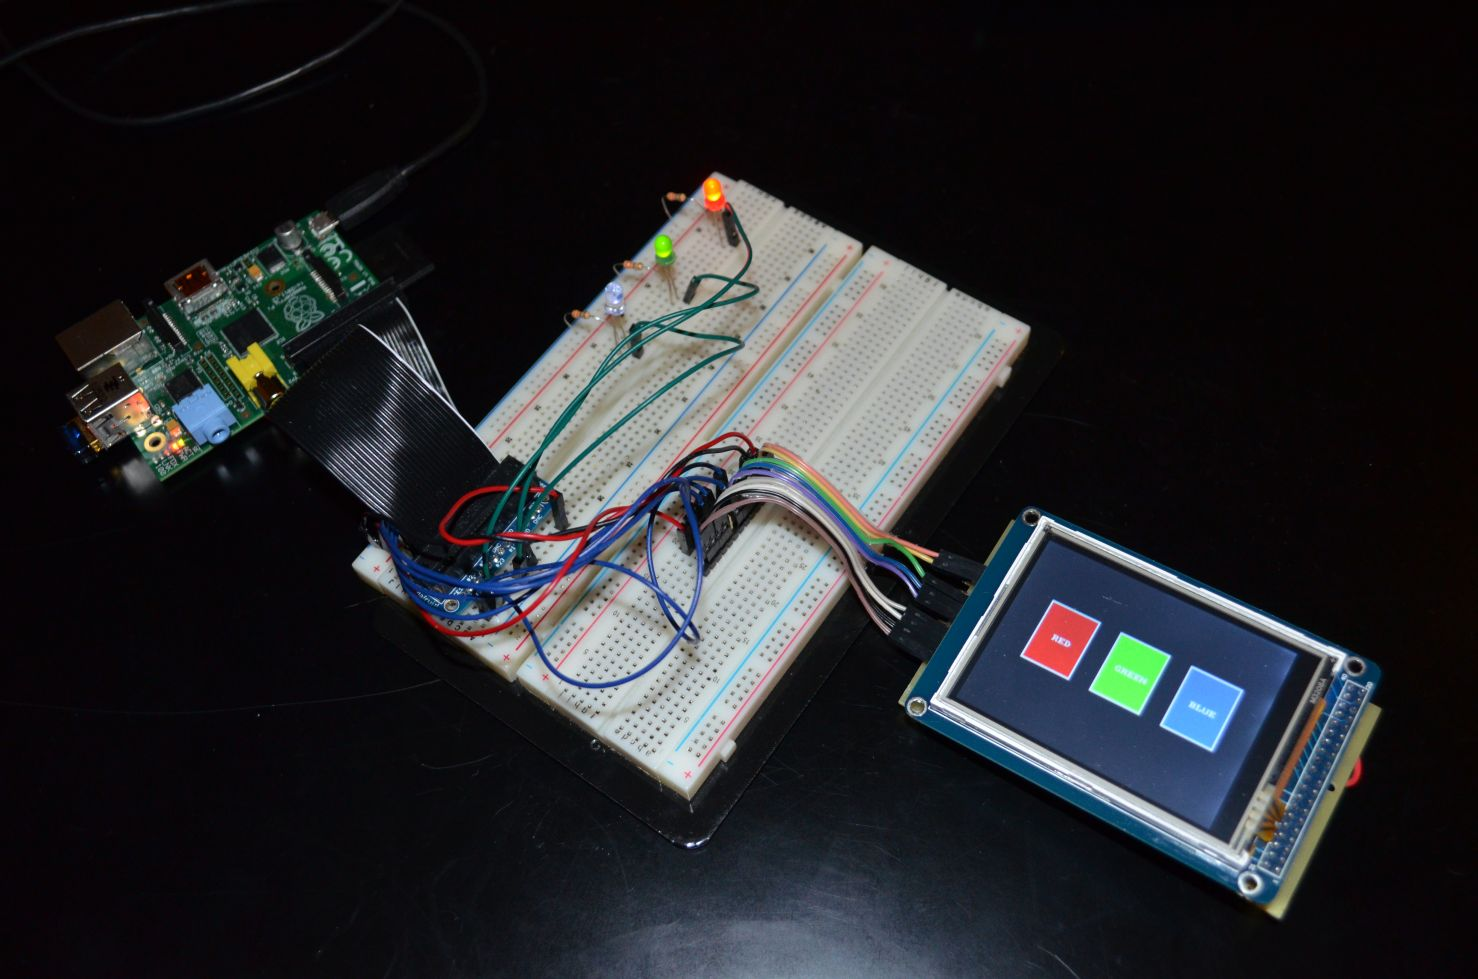 Controlling the GPIO on a Raspberry Pi with a Touchscreen